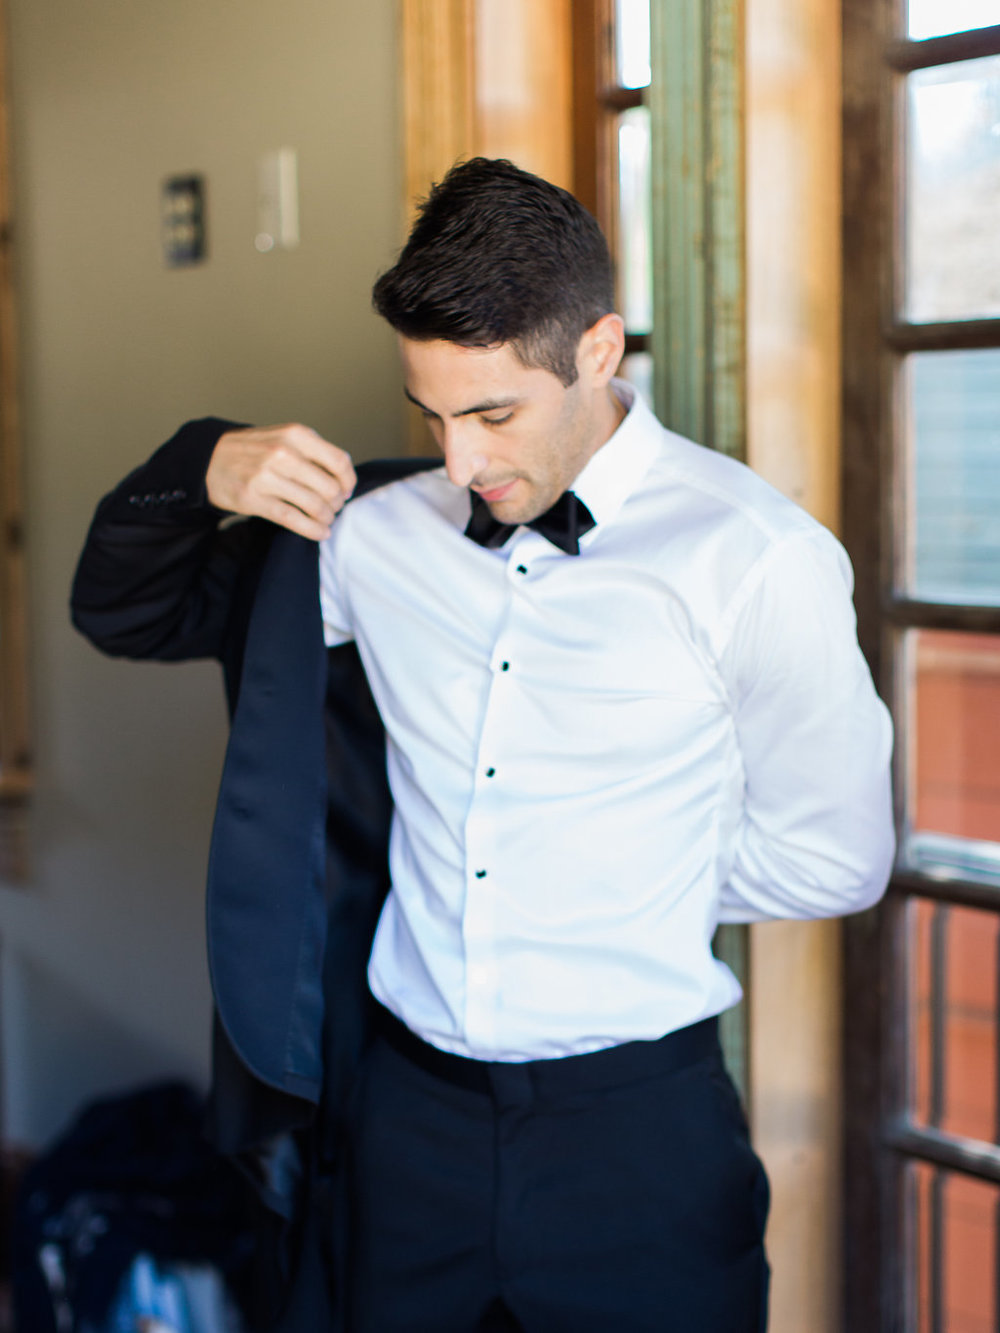 Groom_Preparation-39.jpg